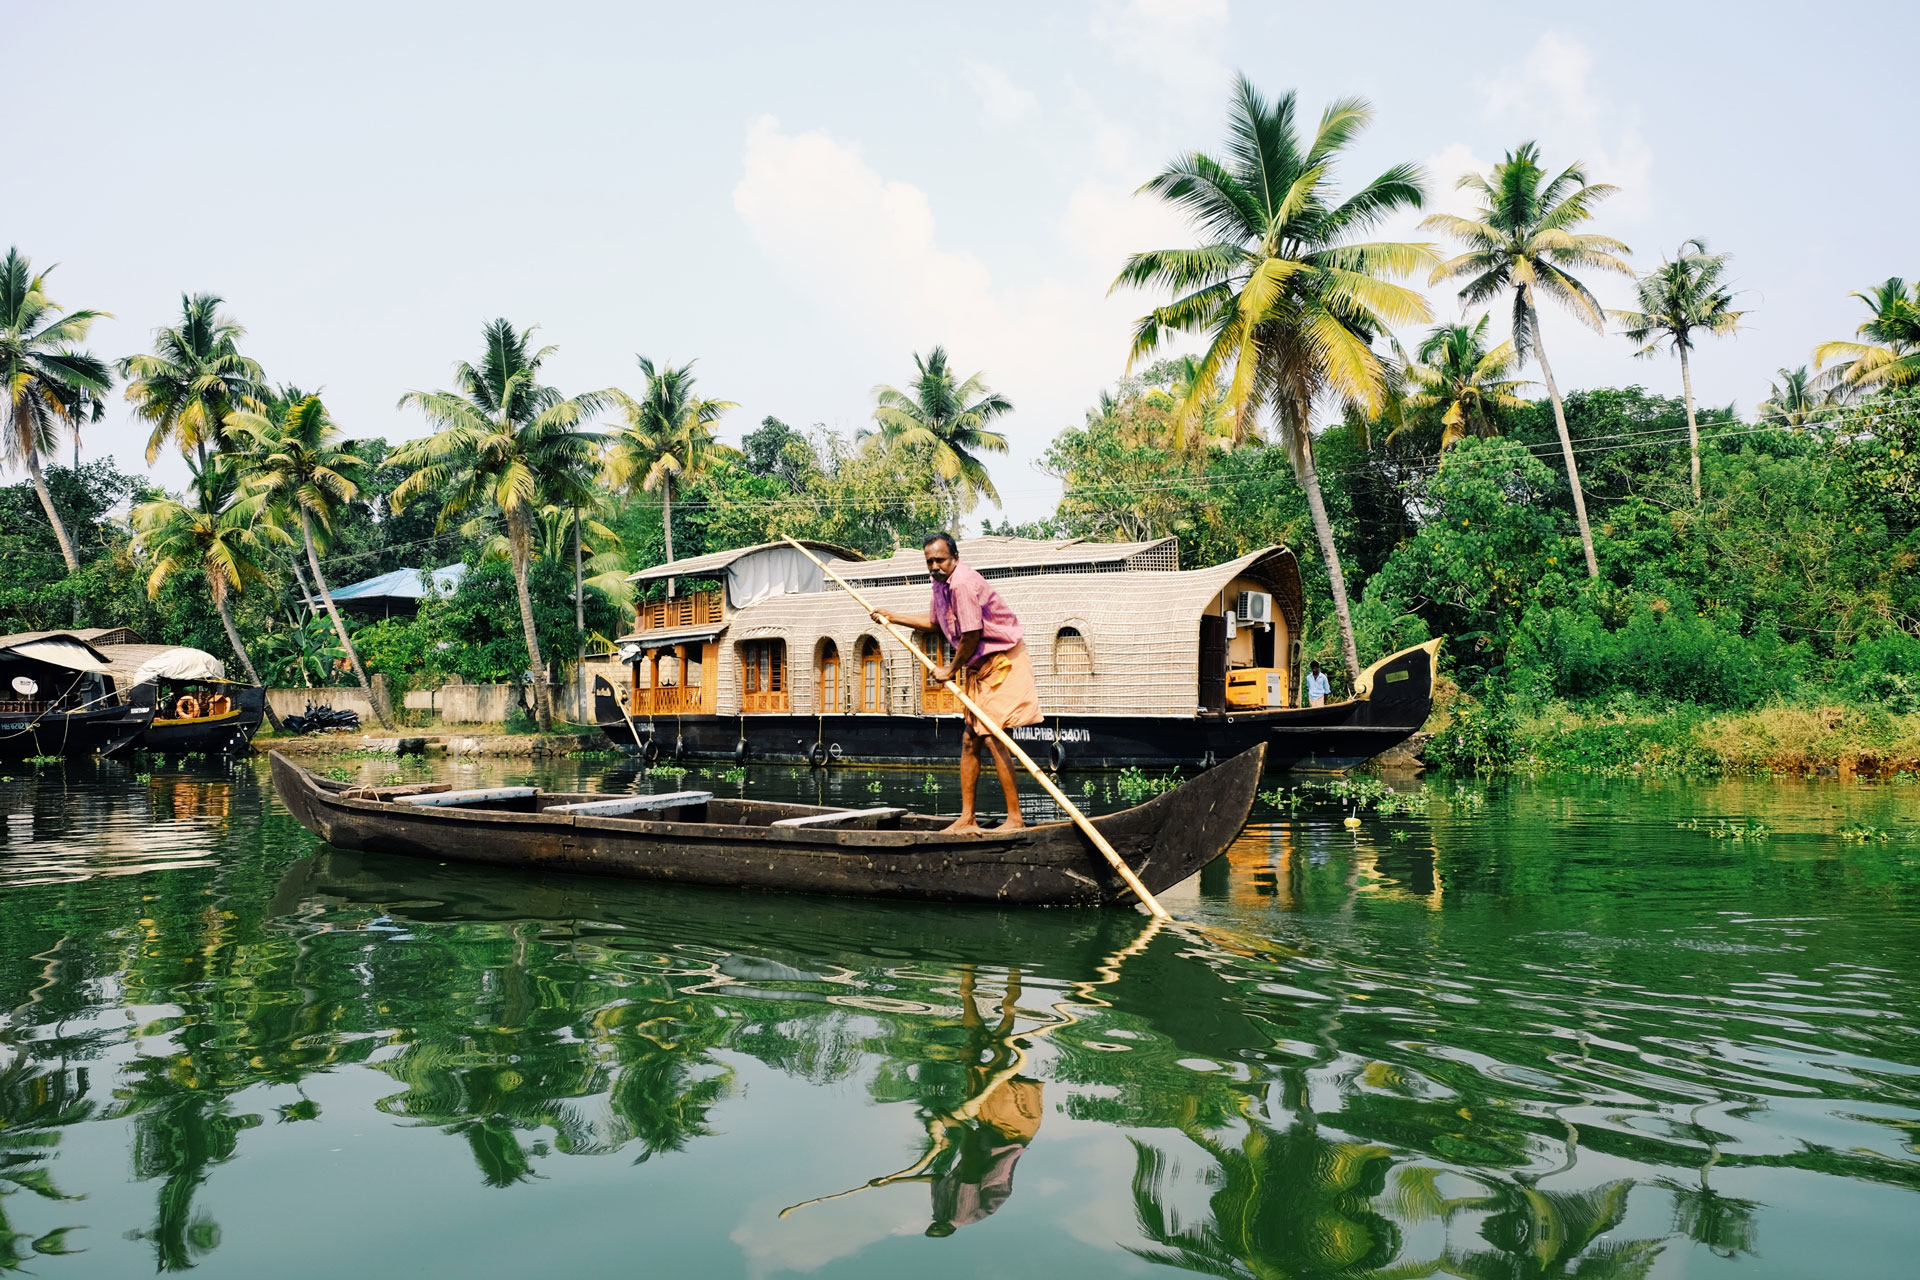 A 7 day Kerala itinerary perfect for first timers